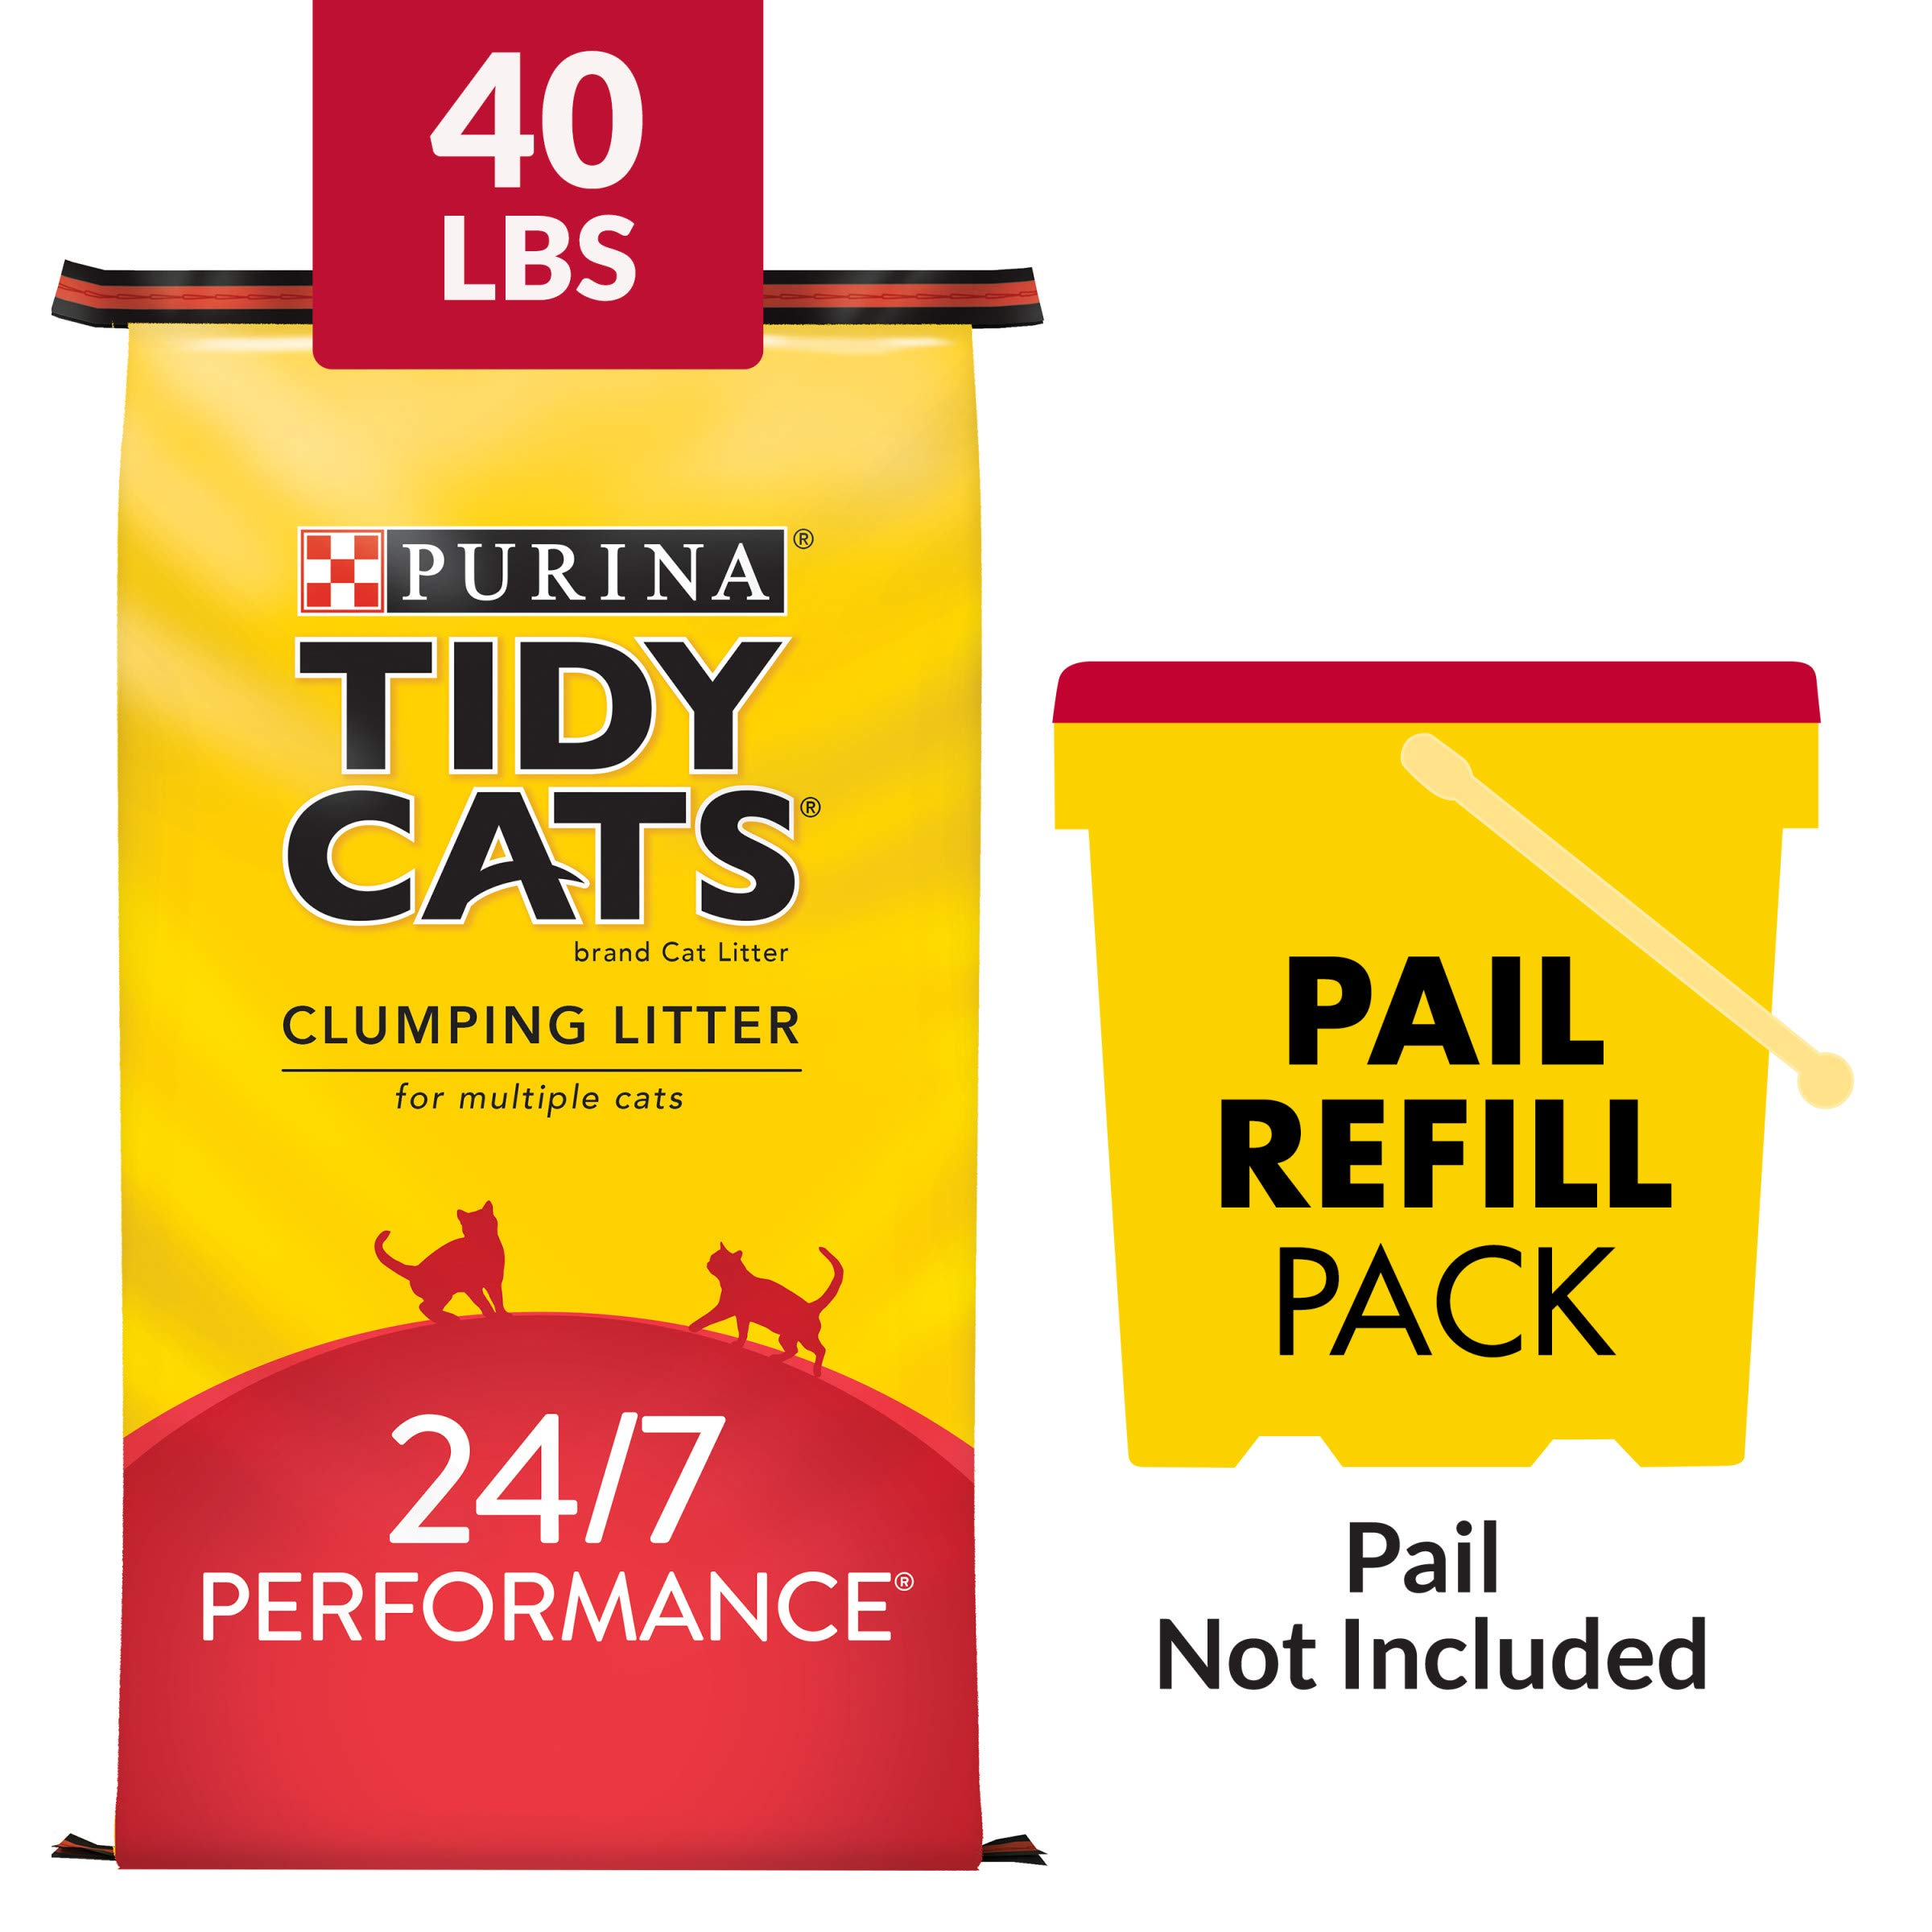 Purina Tidy Cats Clumping Cat Litter, 24/7 Performance Multi Cat Litter - 40 lb. Bag by Purina Tidy Cats